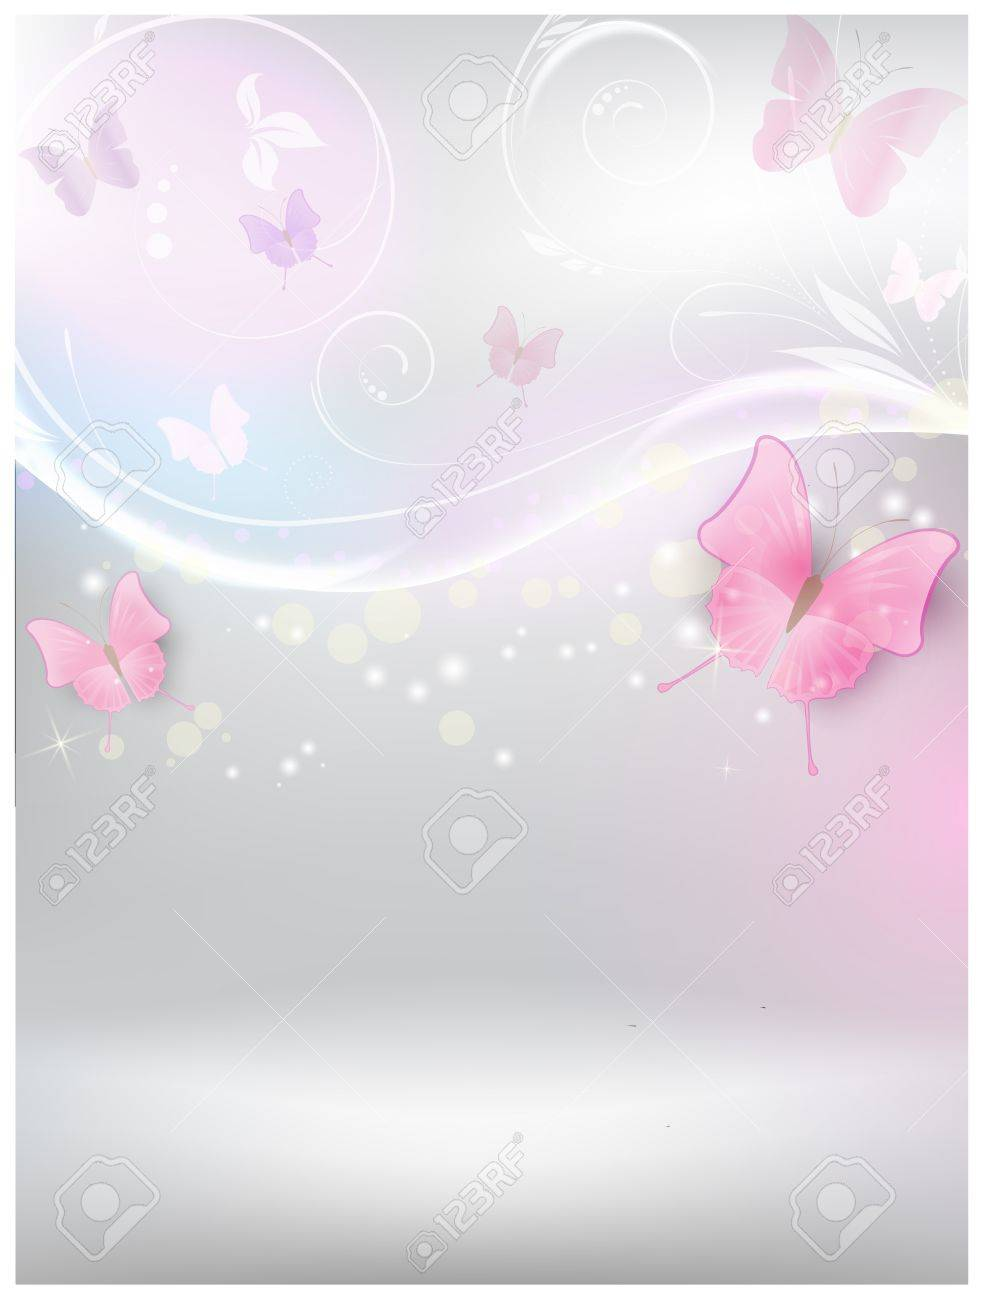 Abstract vector shiny background with floral elements and color butterflies Stock Vector - 20146987